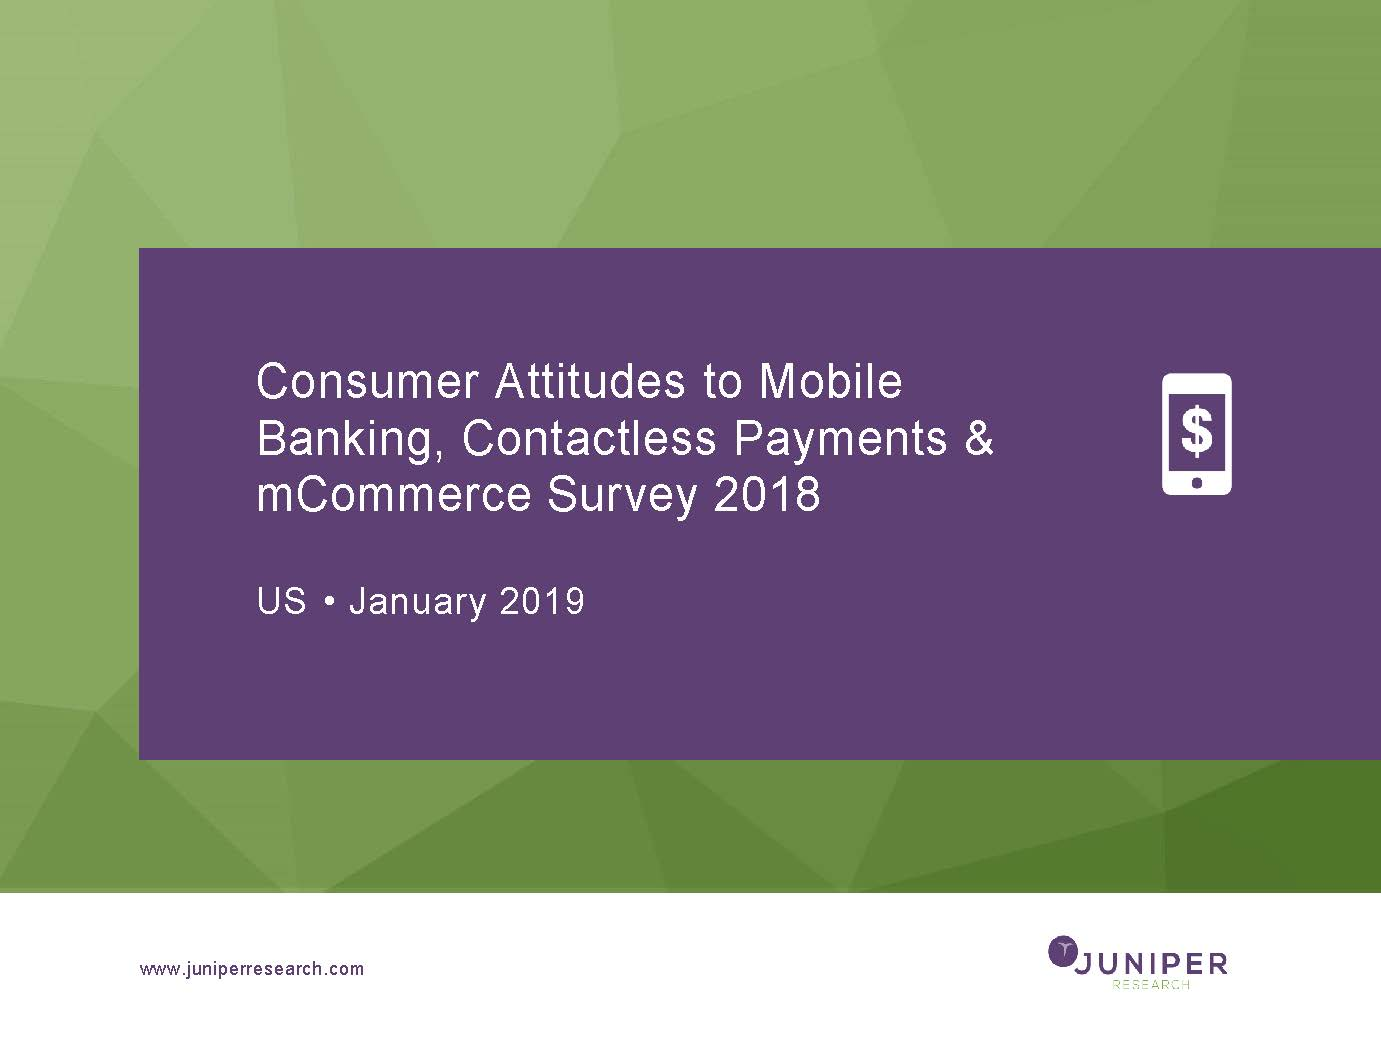 Consumer Attitudes to Mobile Banking, Contactless Payments & mCommerce January 2019 Survey: US